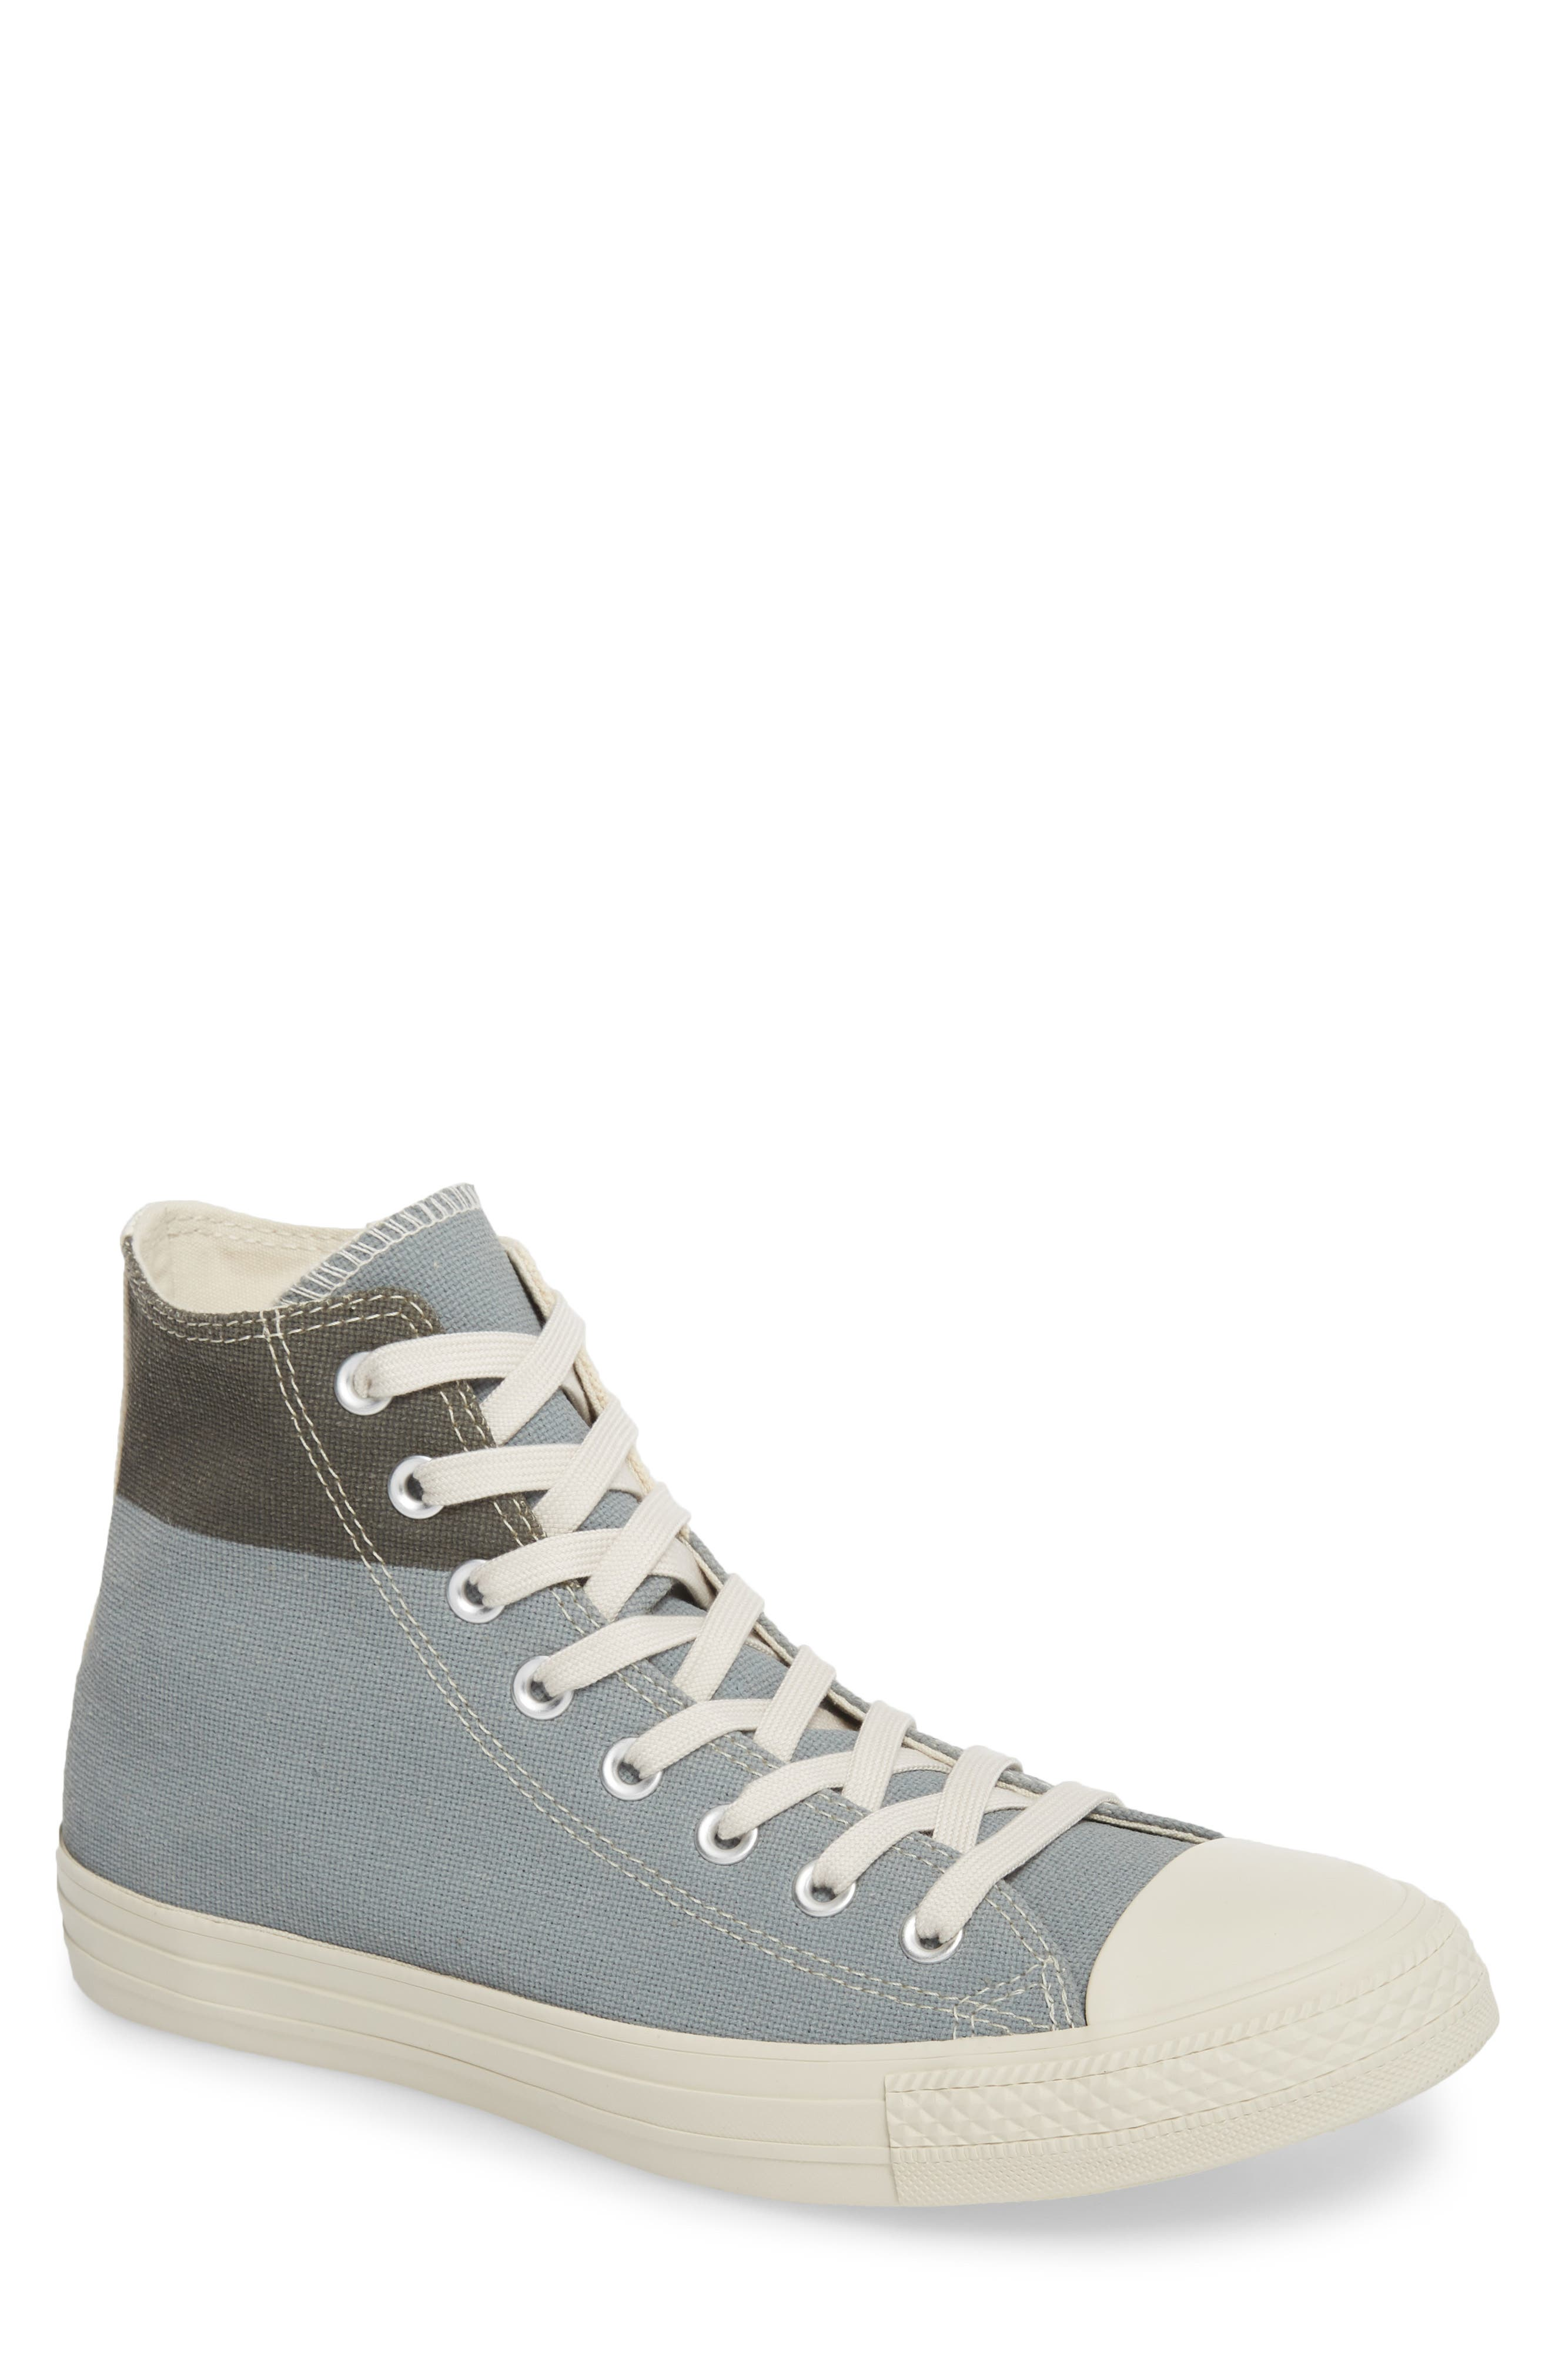 Chuck Taylor<sup>®</sup> All Star<sup>®</sup> Jute Americana High Top Sneaker,                             Main thumbnail 1, color,                             020